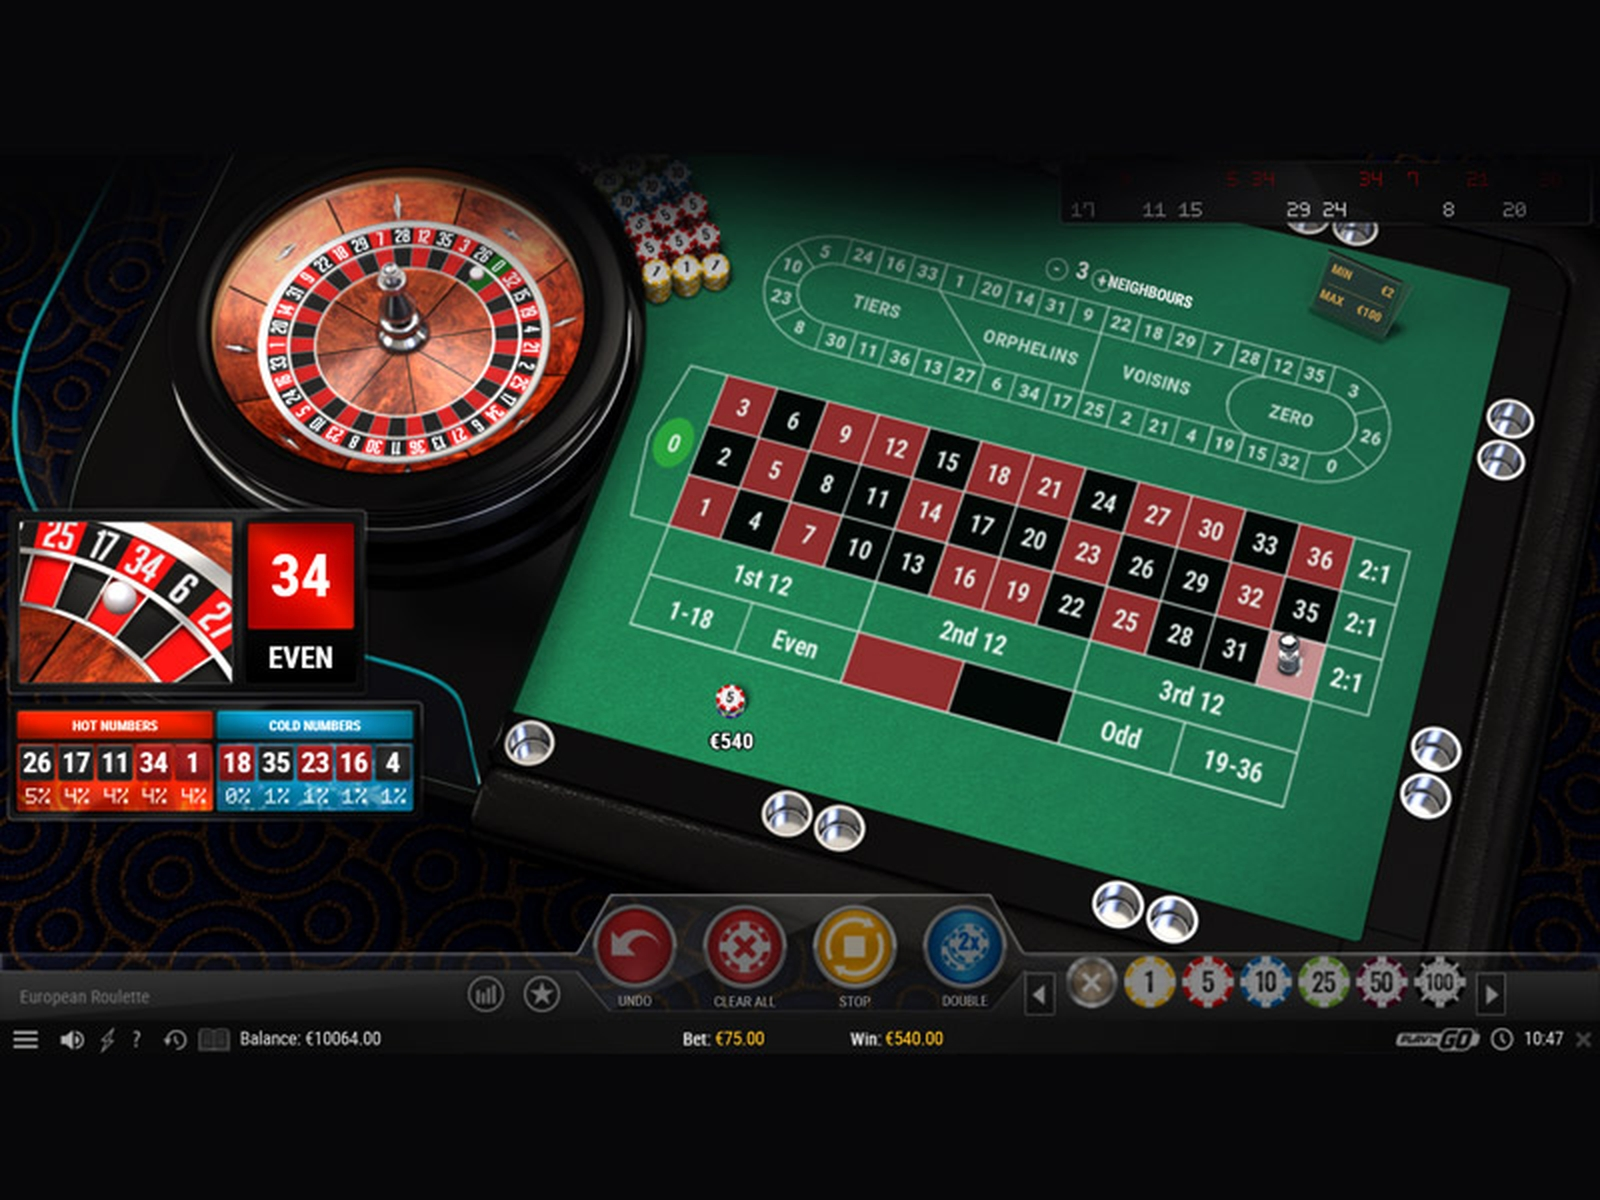 Se European Roulette (Top Trend Gaming) Online Slot Demo Game, Top Trend Gaming